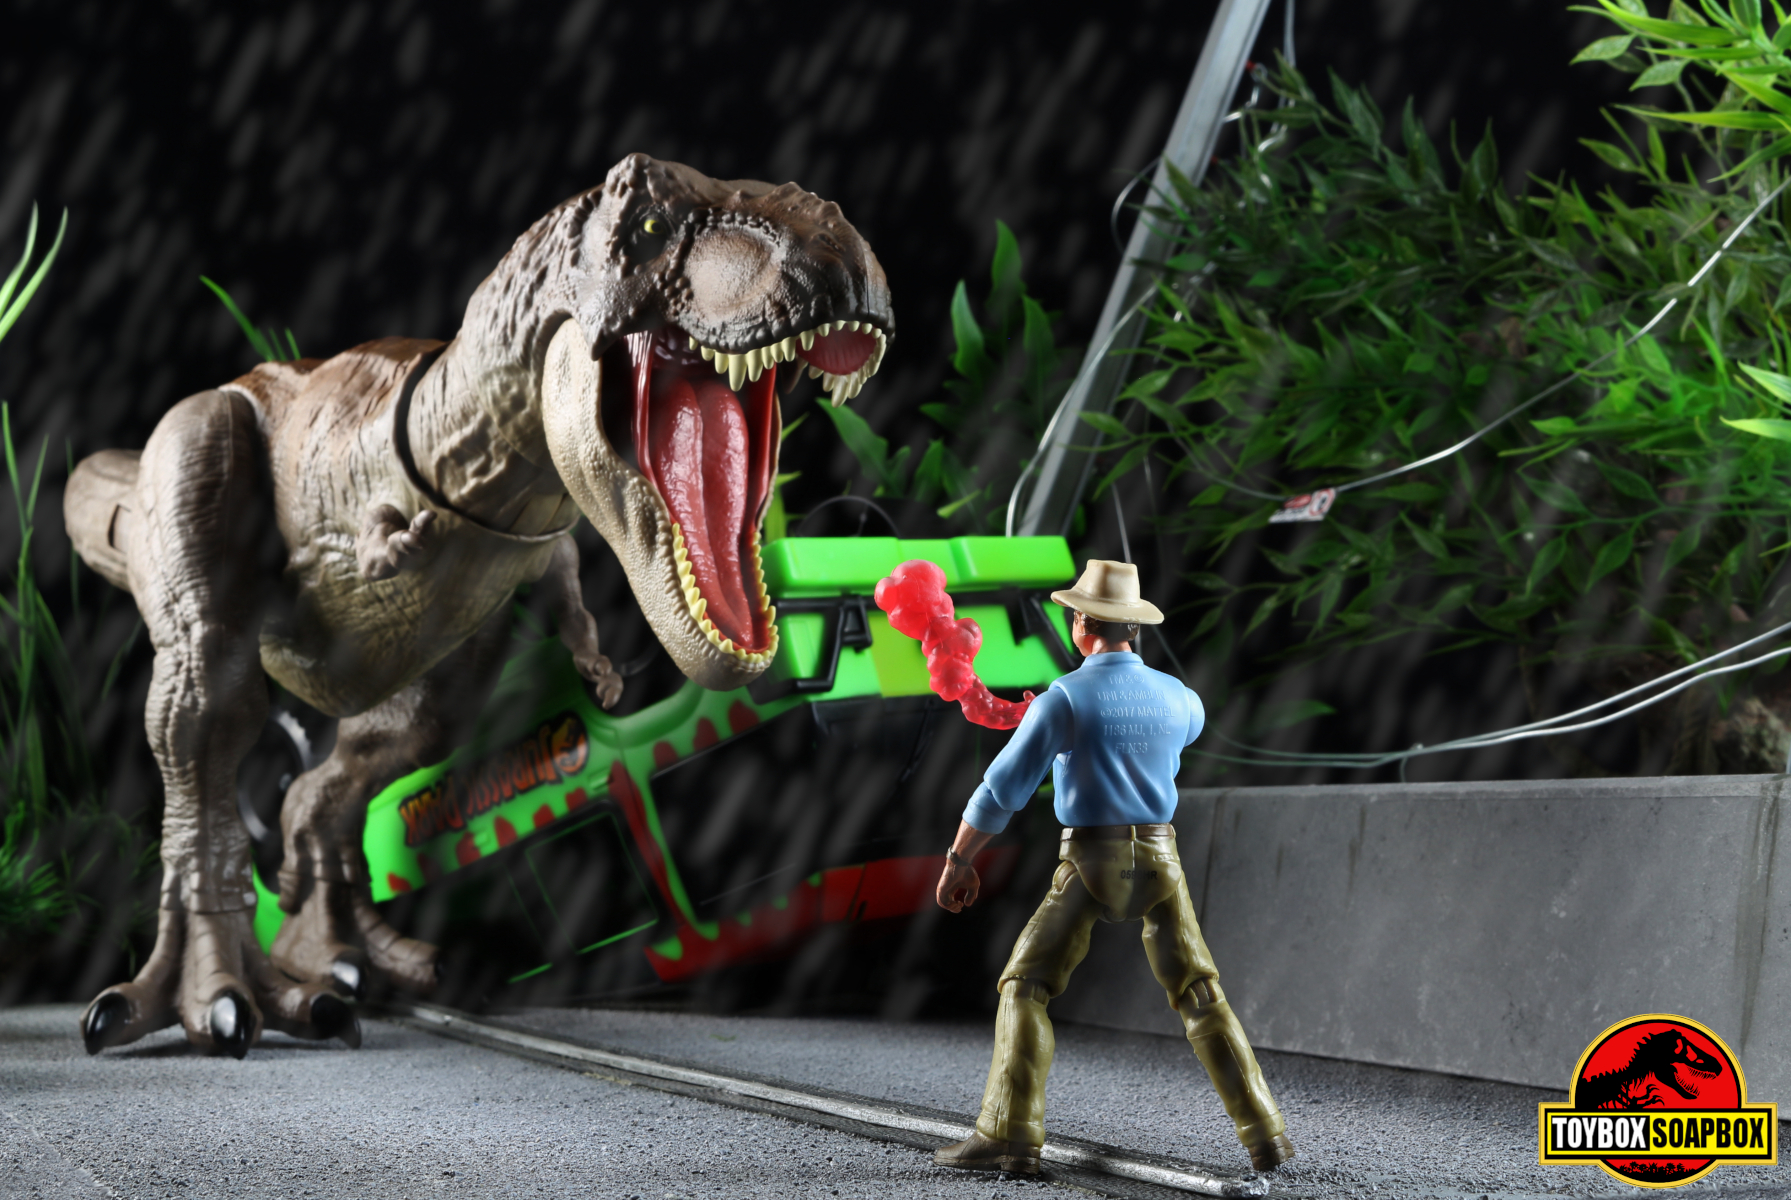 jurassic world tyrannosaurus rex bite and fight